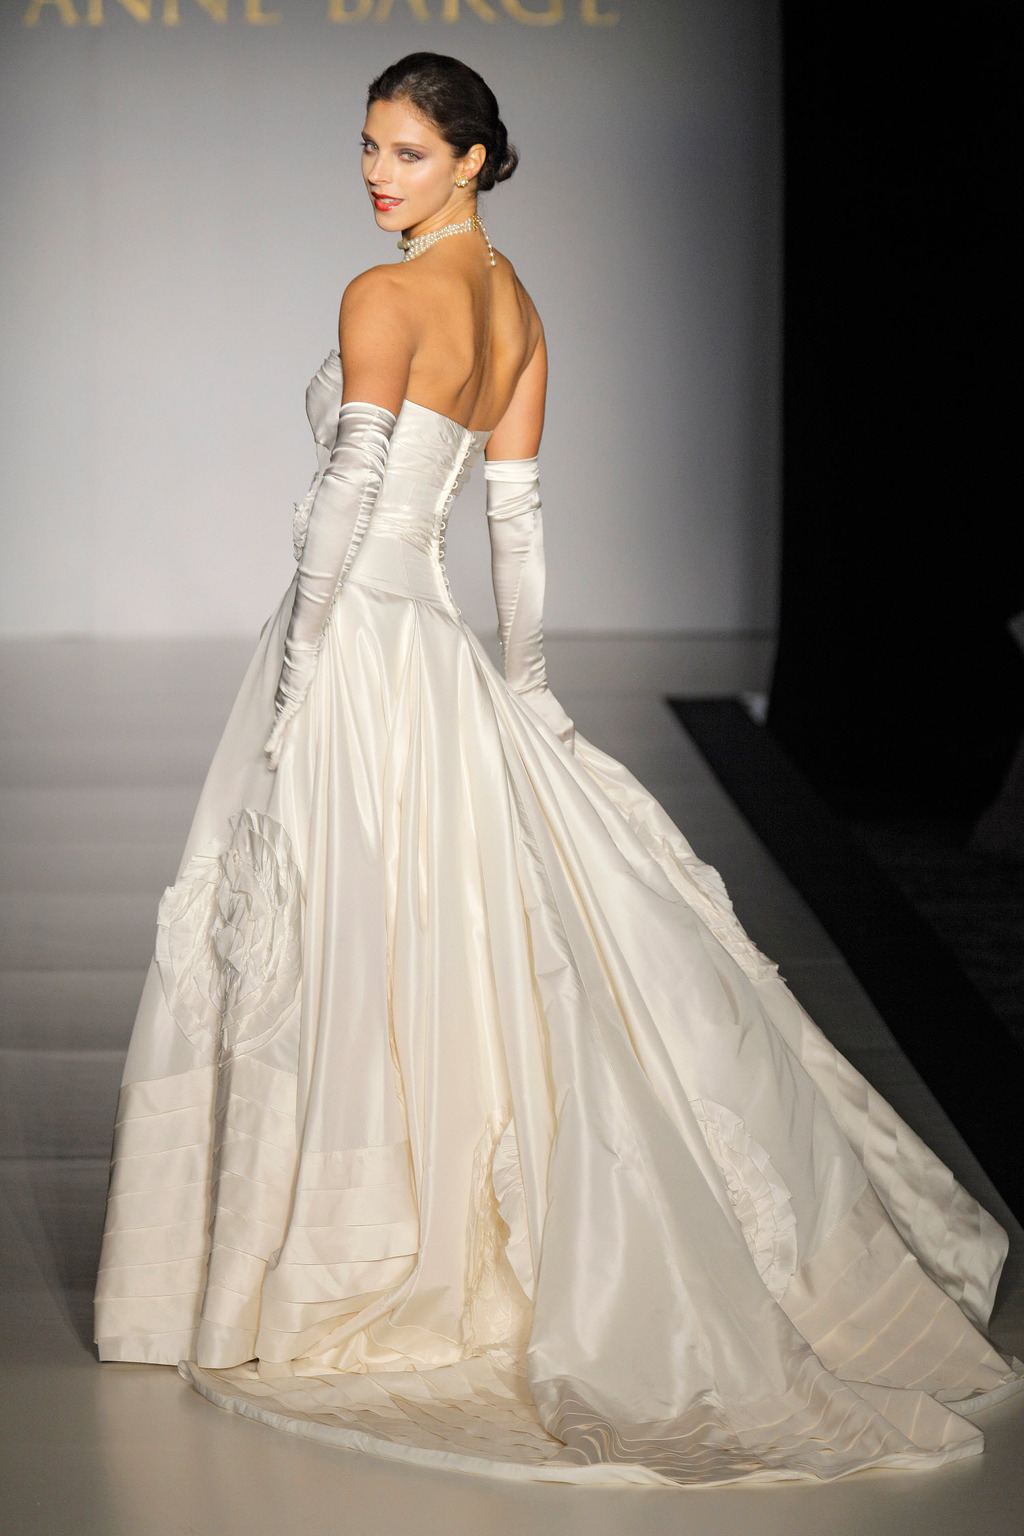 Fall-2011-wedding-dresses-anne-barge-jacqueline-ball-gown-satin-strapless-long-bridal-gloves.full